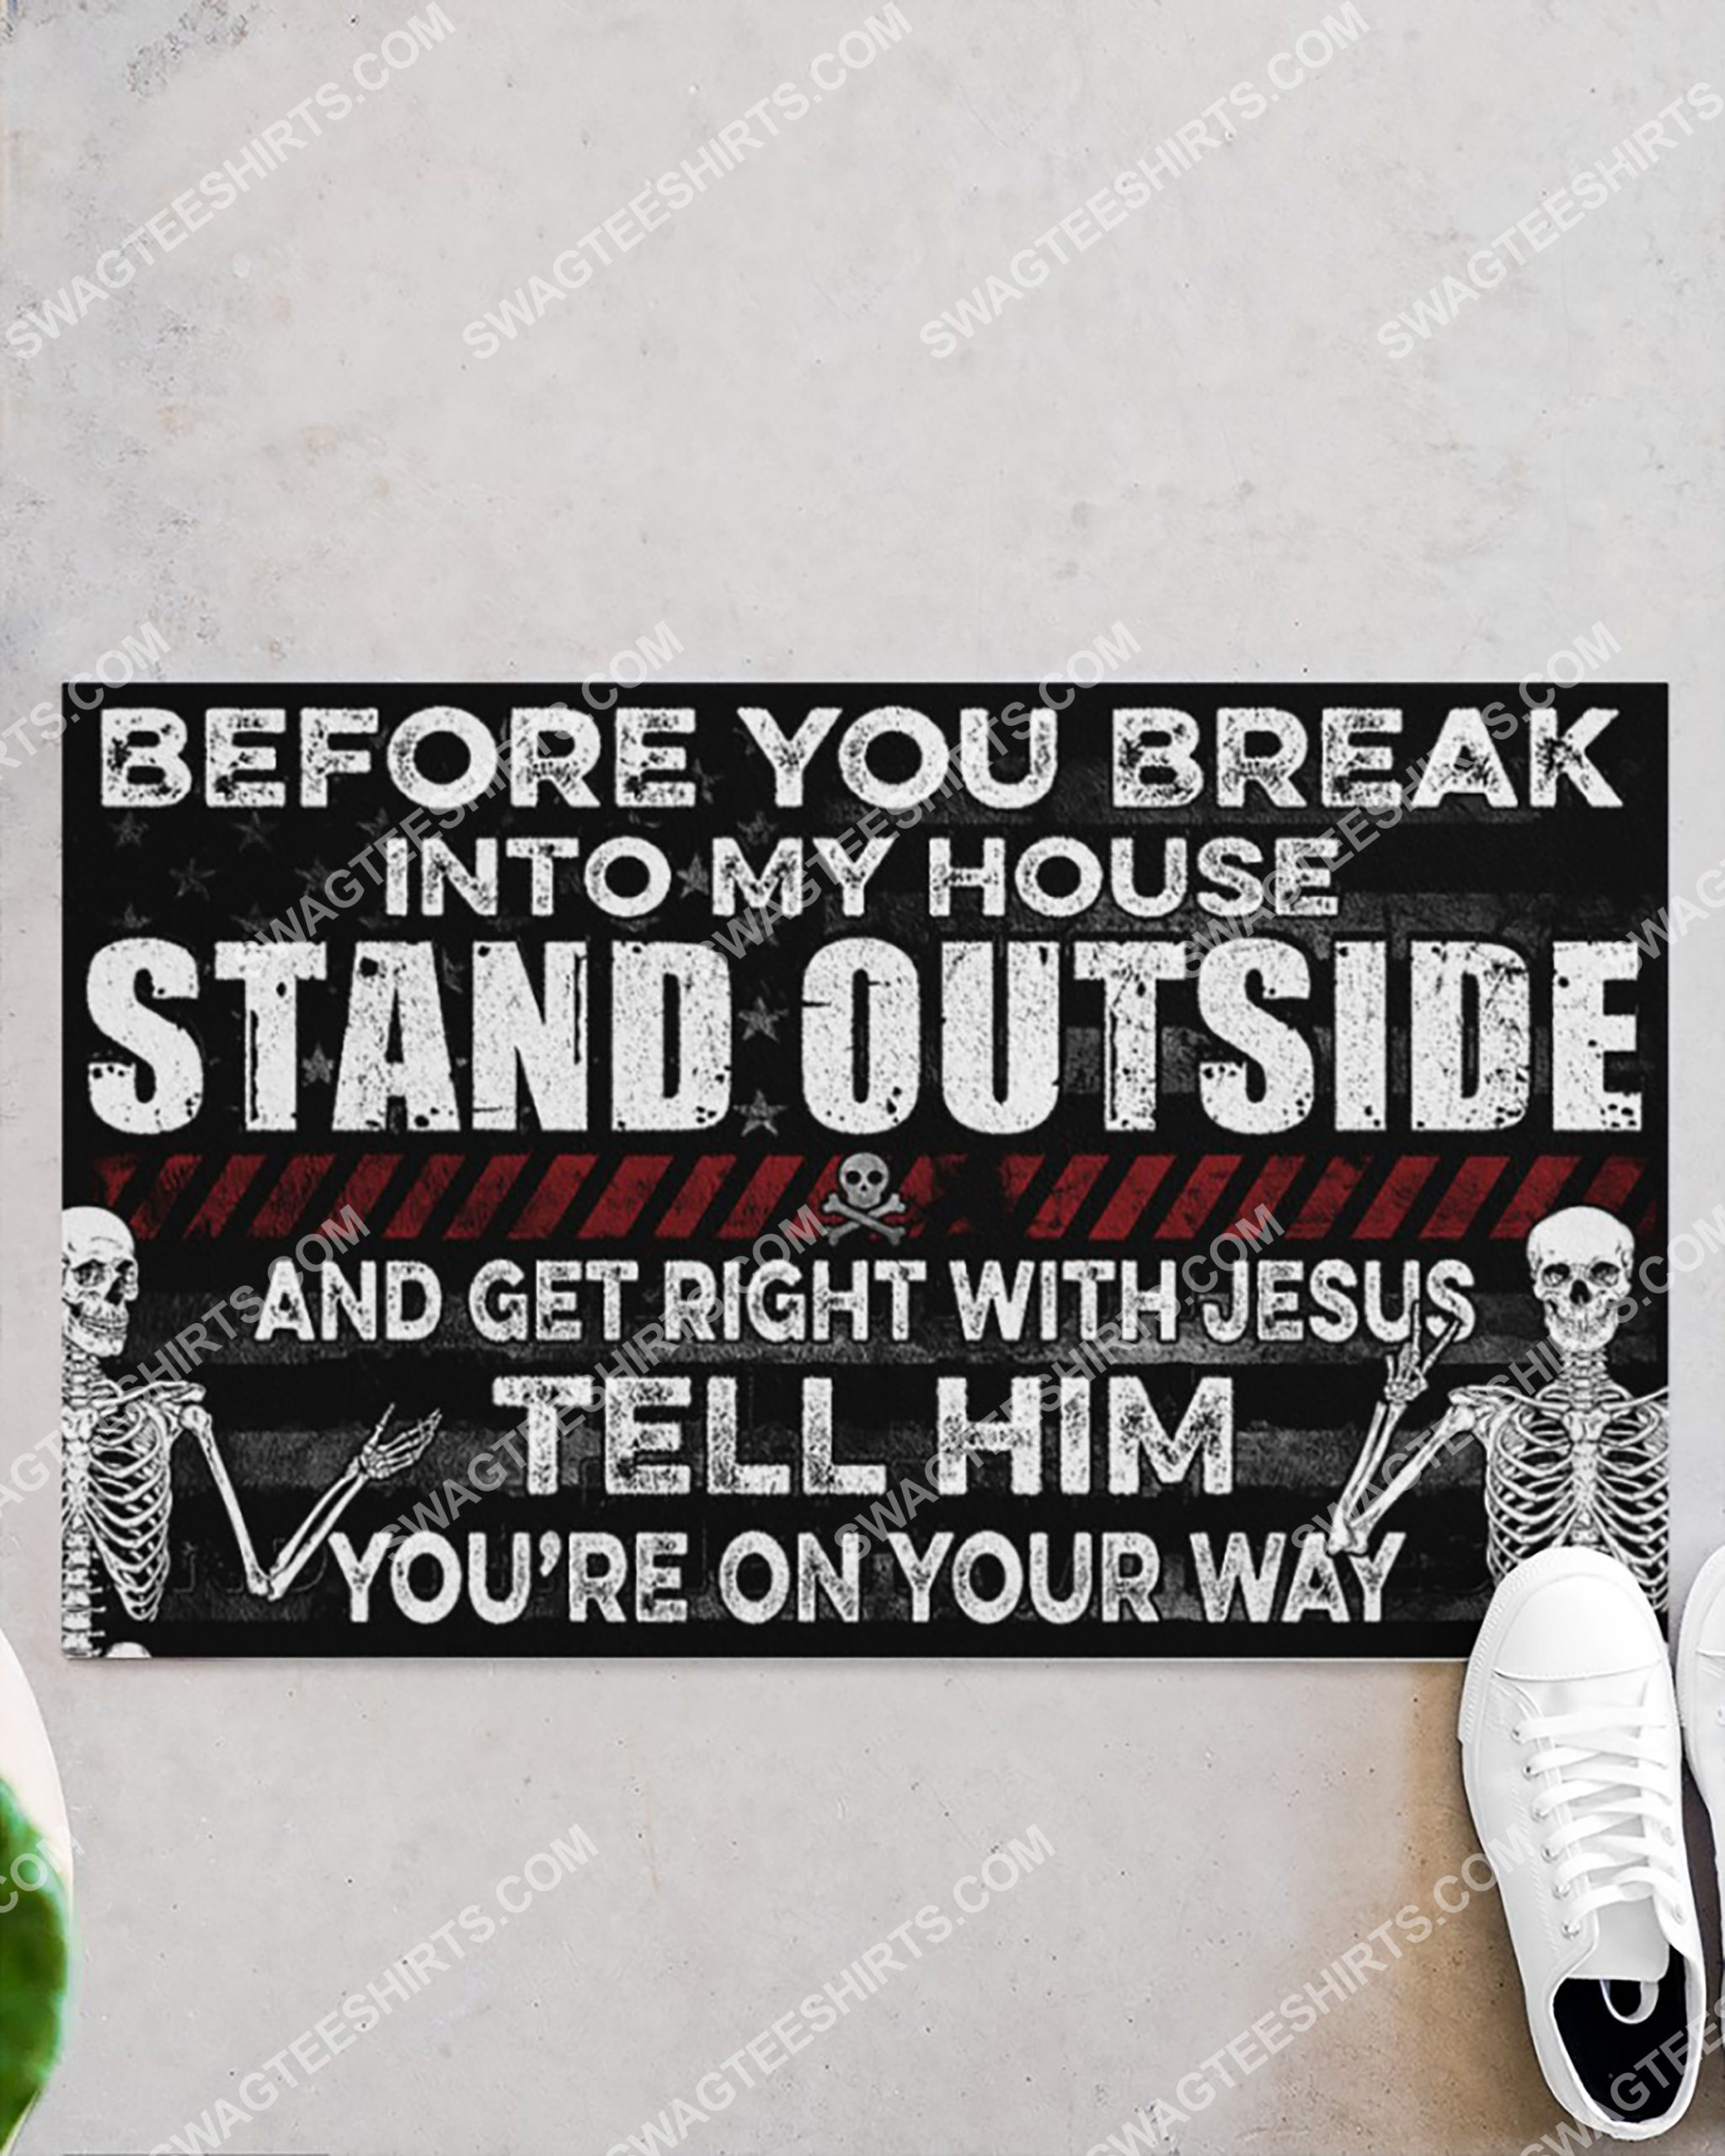 skull before you break into my house stand outside and get right with Jesus doormat 2(1)